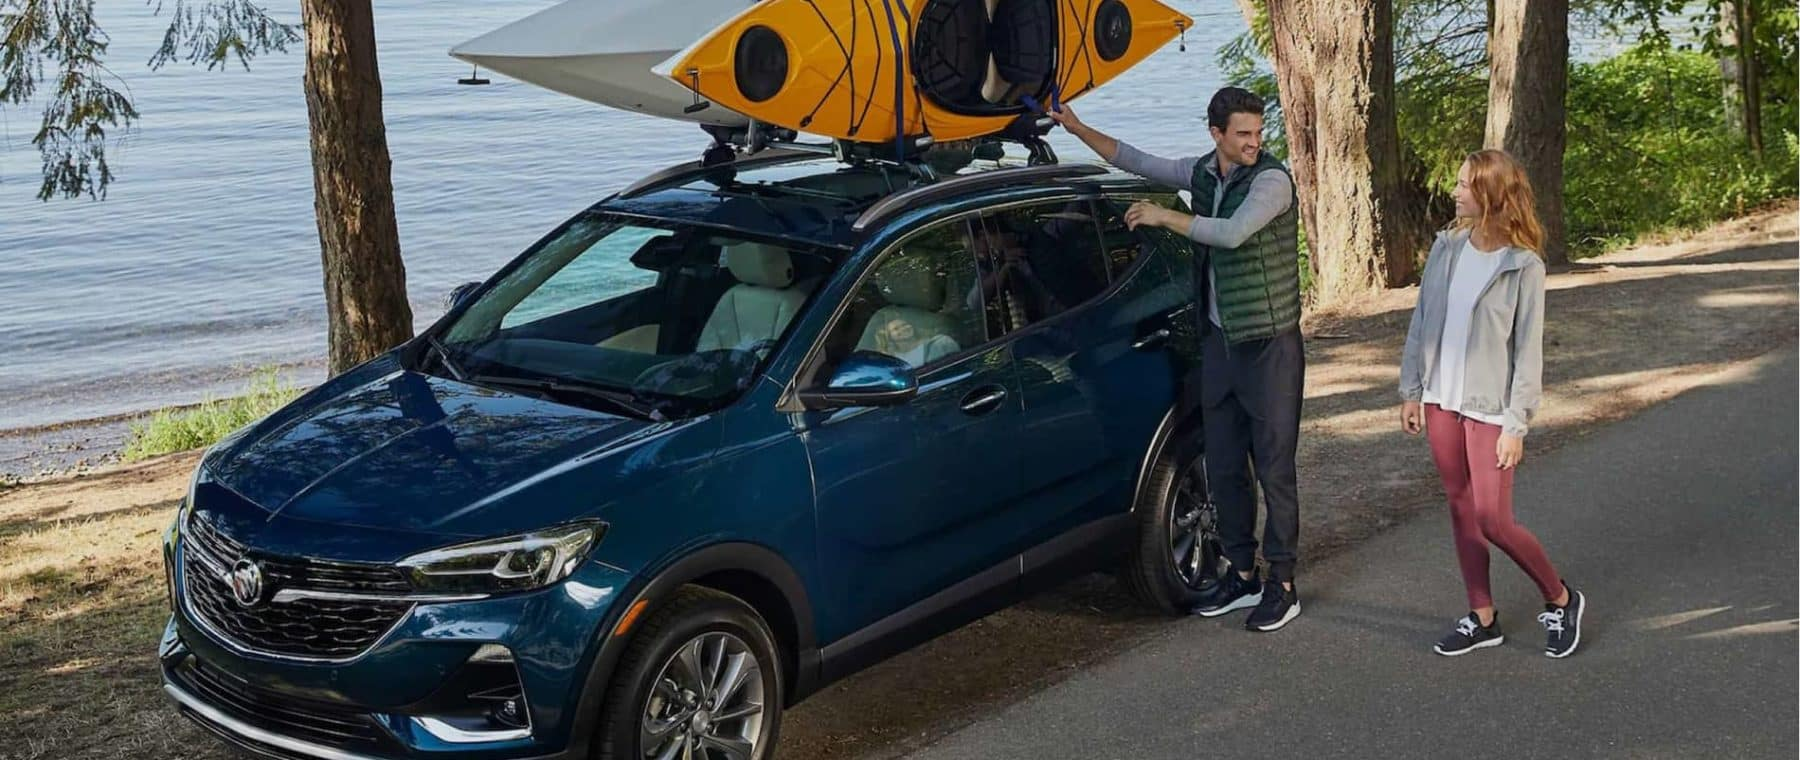 Couple attaching kayaks to the top of a Buick SUV